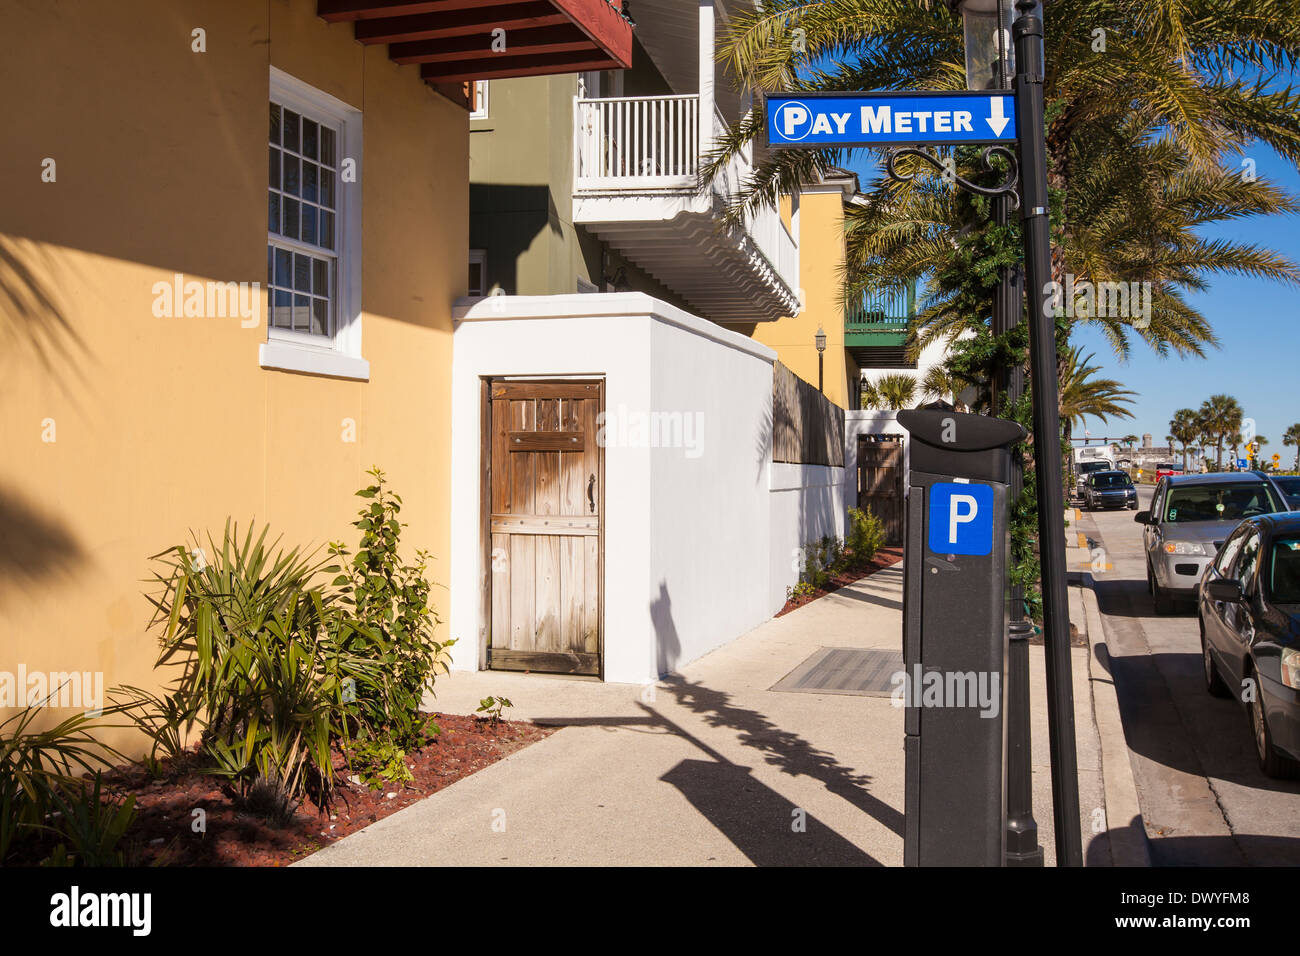 A parking meter is pictured in St. Augustine, Florida - Stock Image